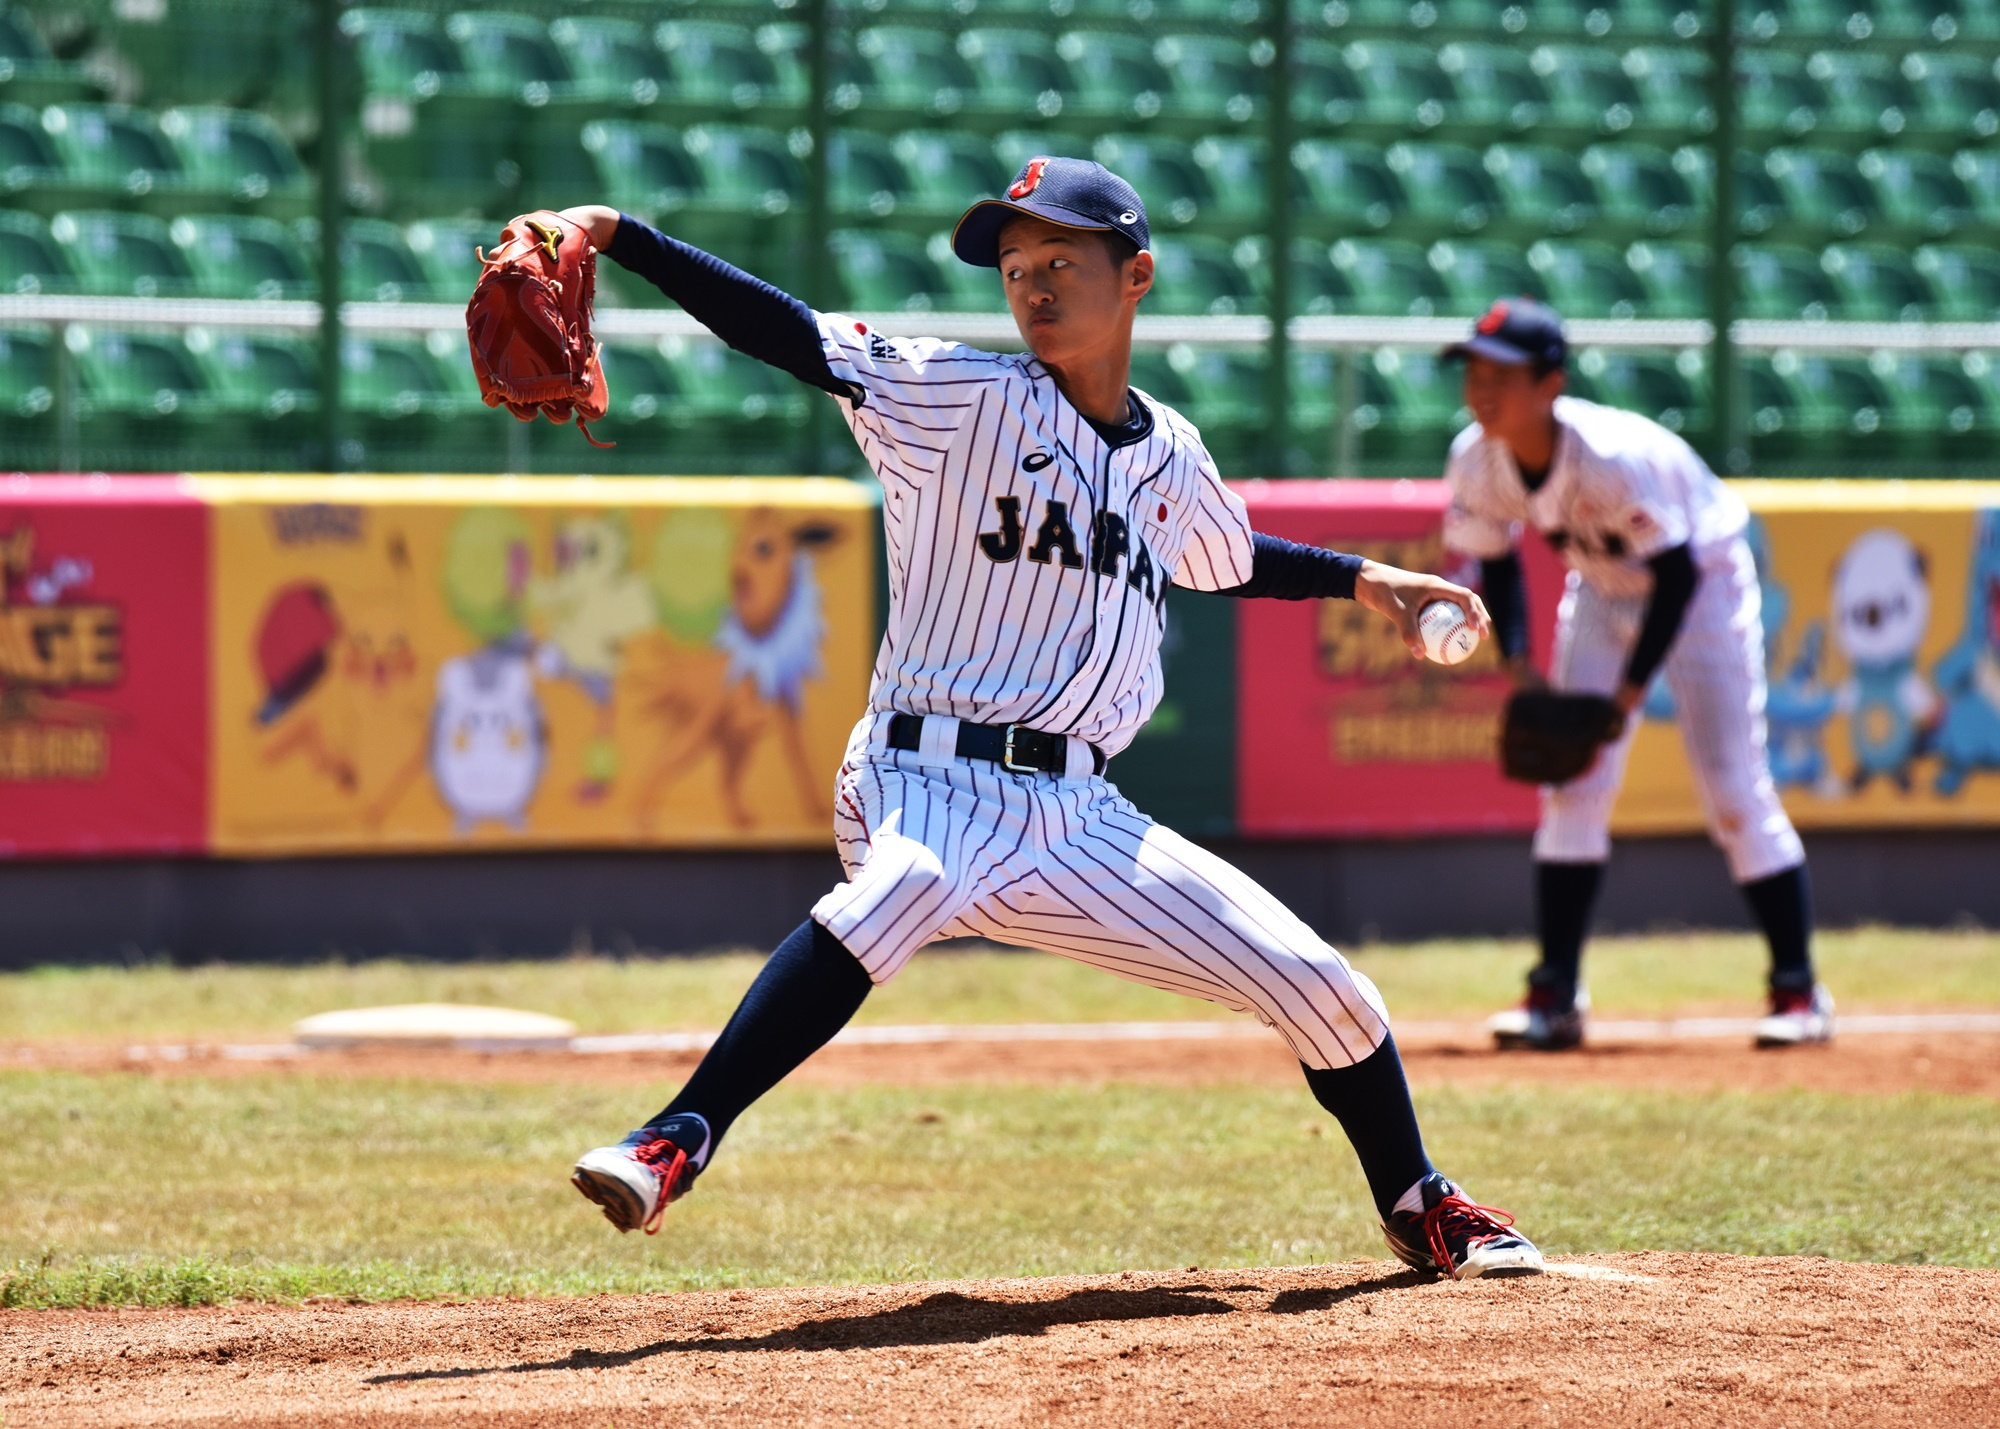 Japan's pitchers gave no chance to the absolute beginners